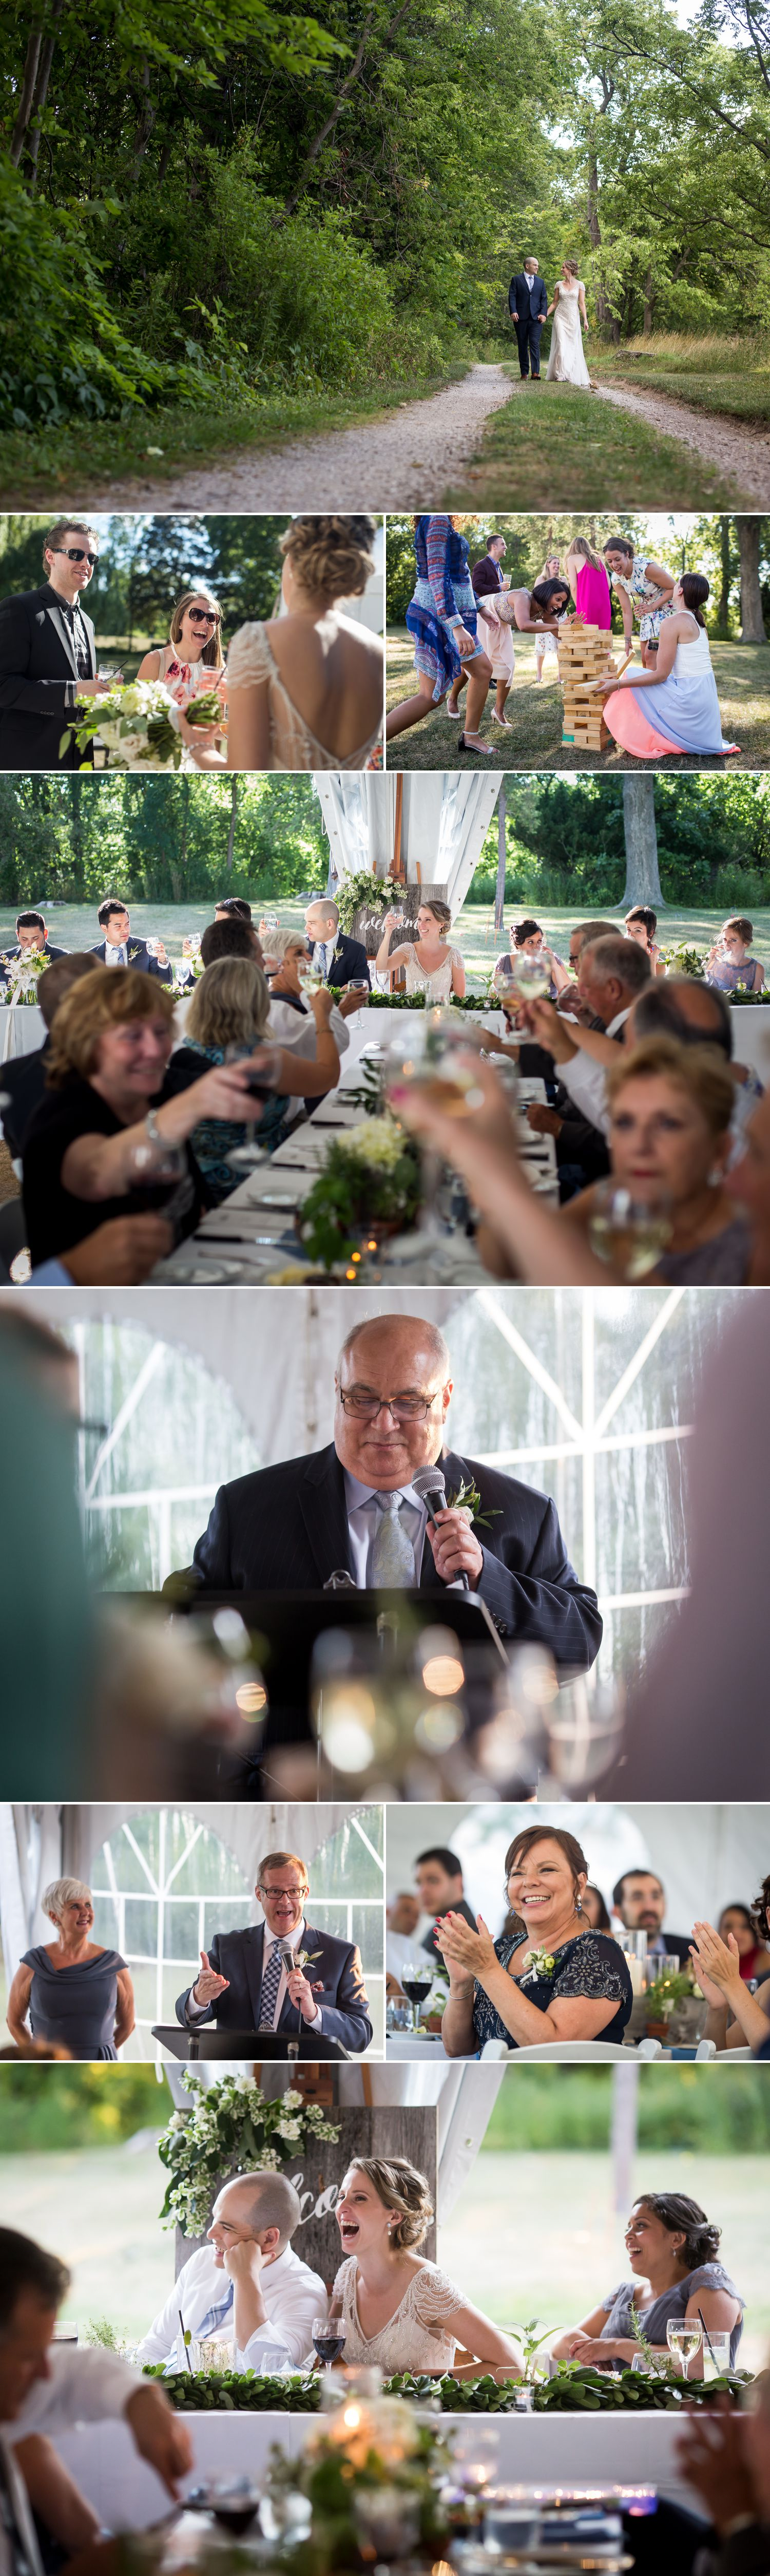 An outdoor tented wedding reception taking place at Ruthven Heritage Estate